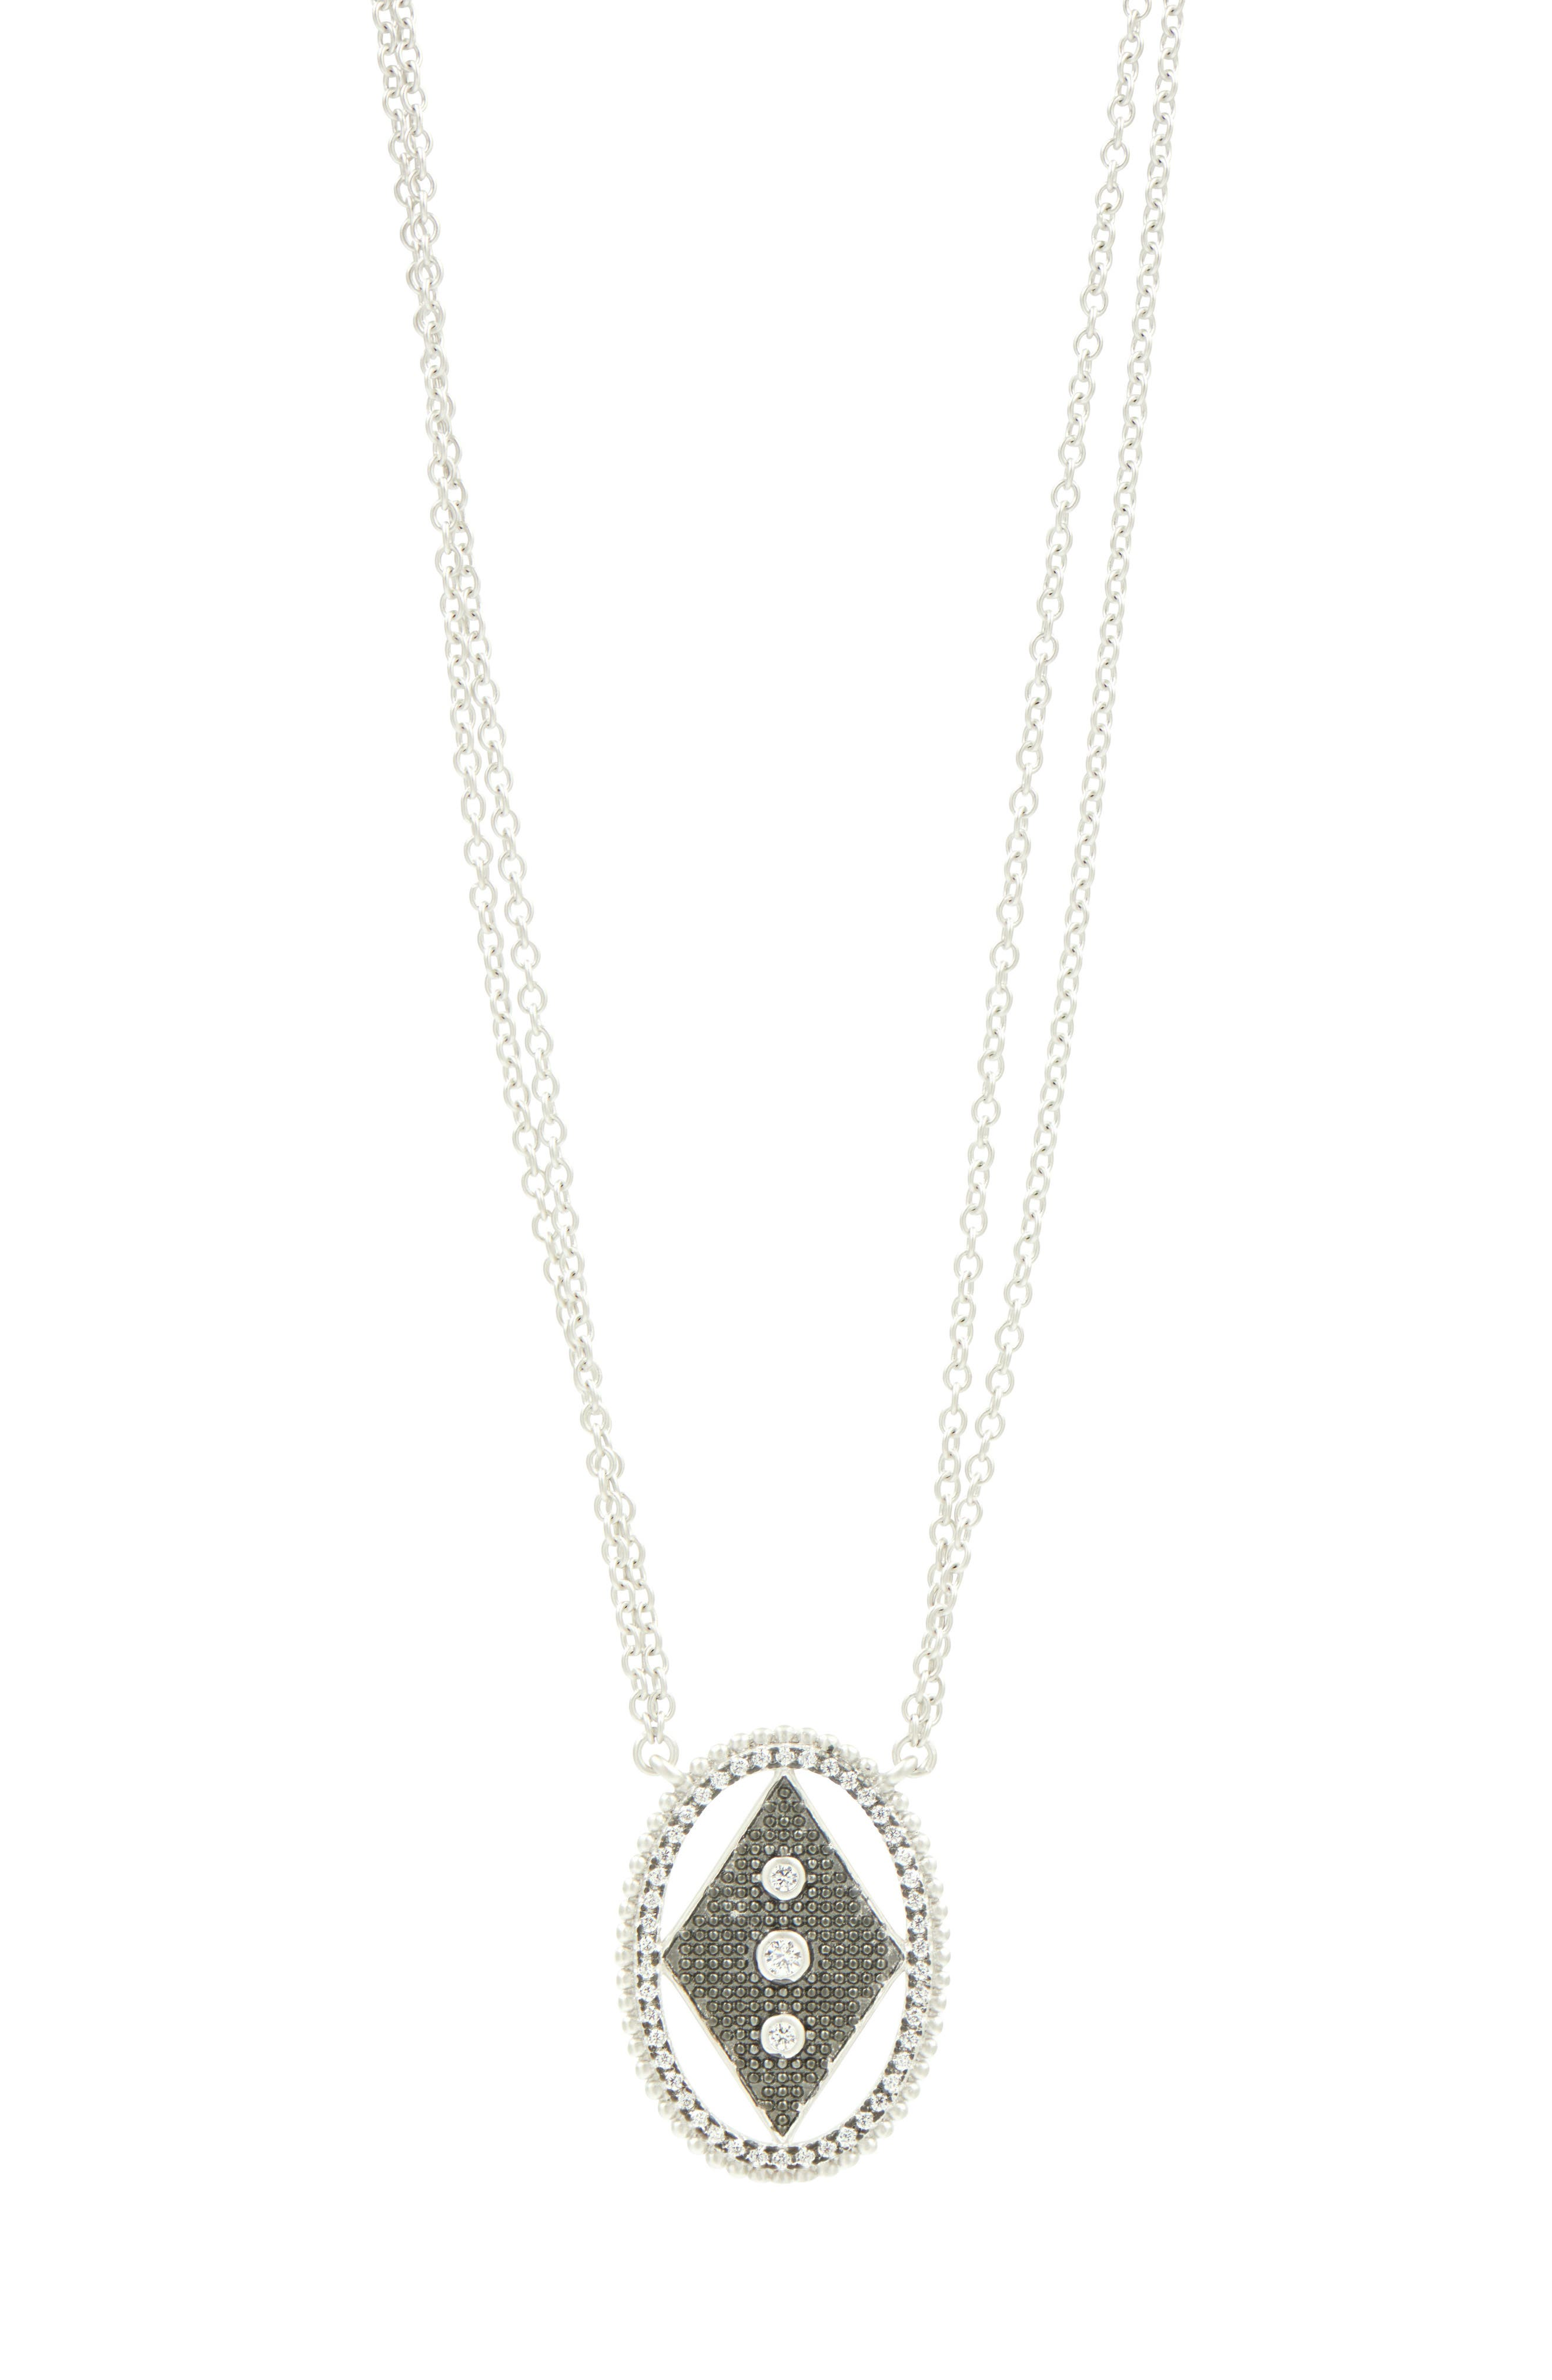 FREIDA ROTHMAN Industrial Finish Long Double Chain Pendant Necklace